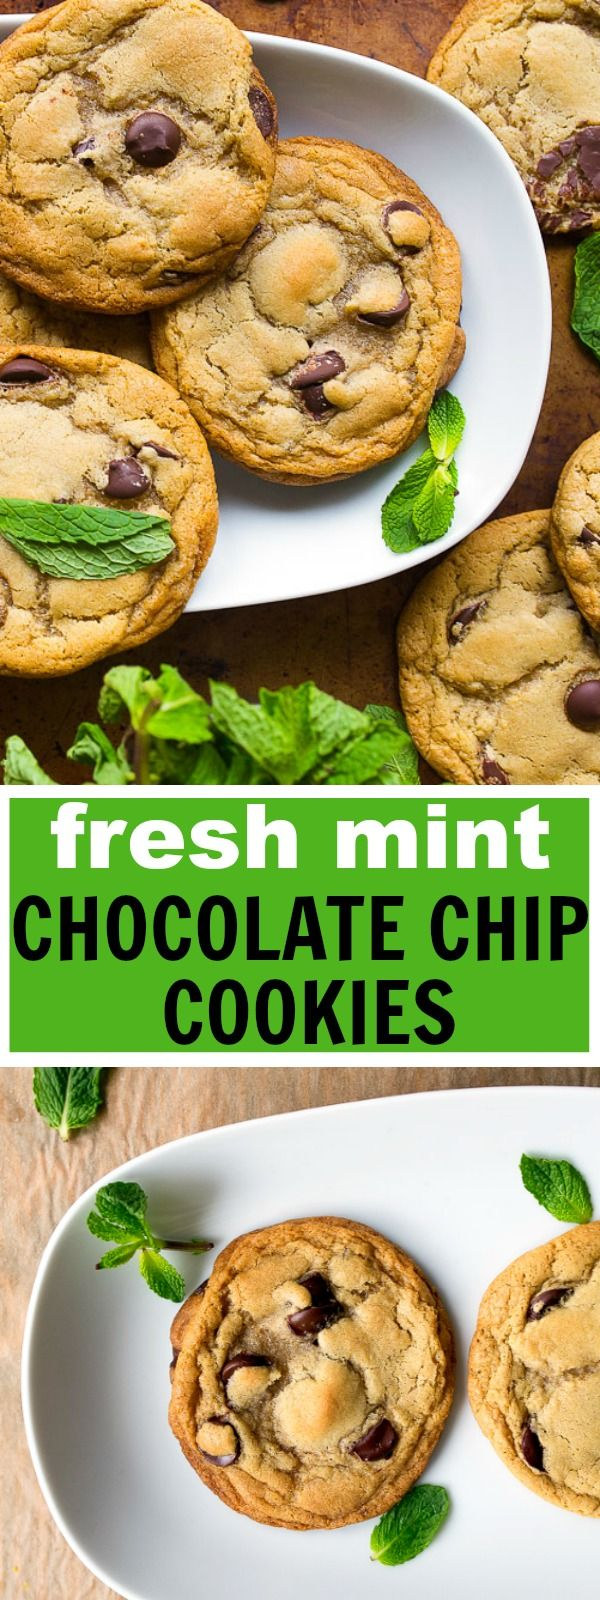 Homemade chocolate chip cookies made with real fresh mint! Mint chocolate chip cookies are my new favorite chocolate chip cookie from scratch recipe!